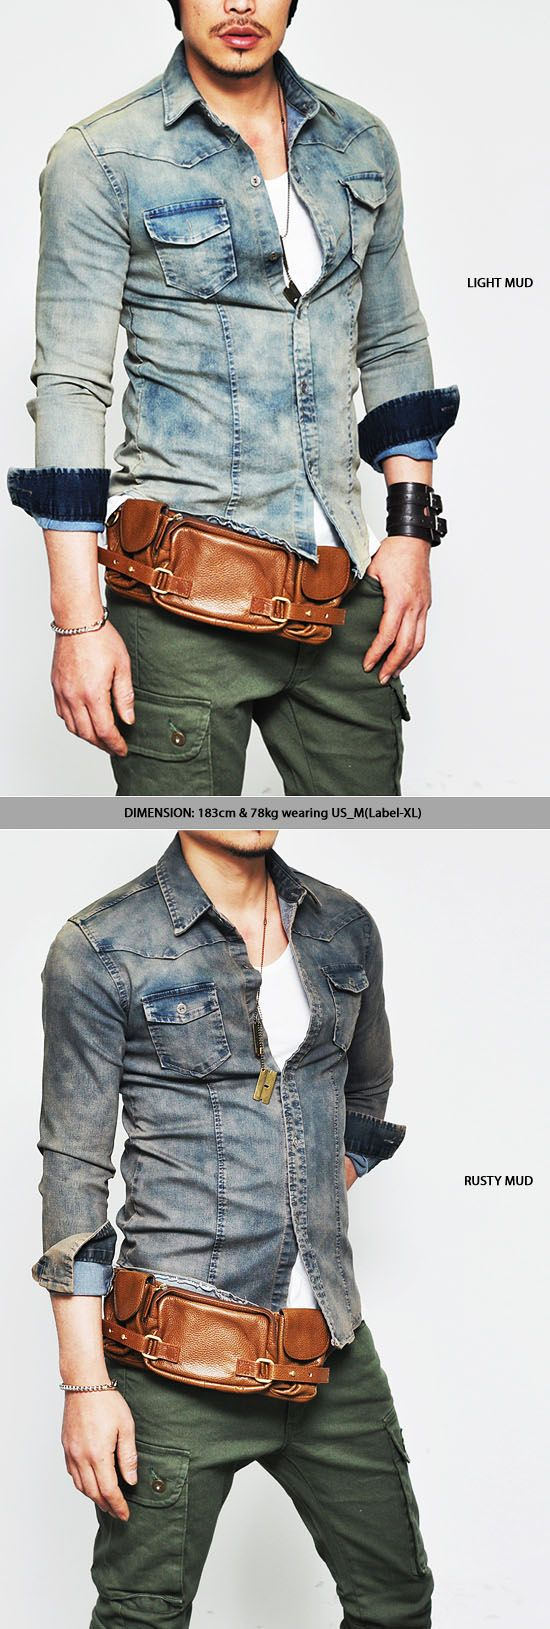 Tops :: Shirts :: Real Vintage Mud Snug Fit Span Denim-Shirt 82 - Mens Fashion Clothing For An Attractive Guy Look